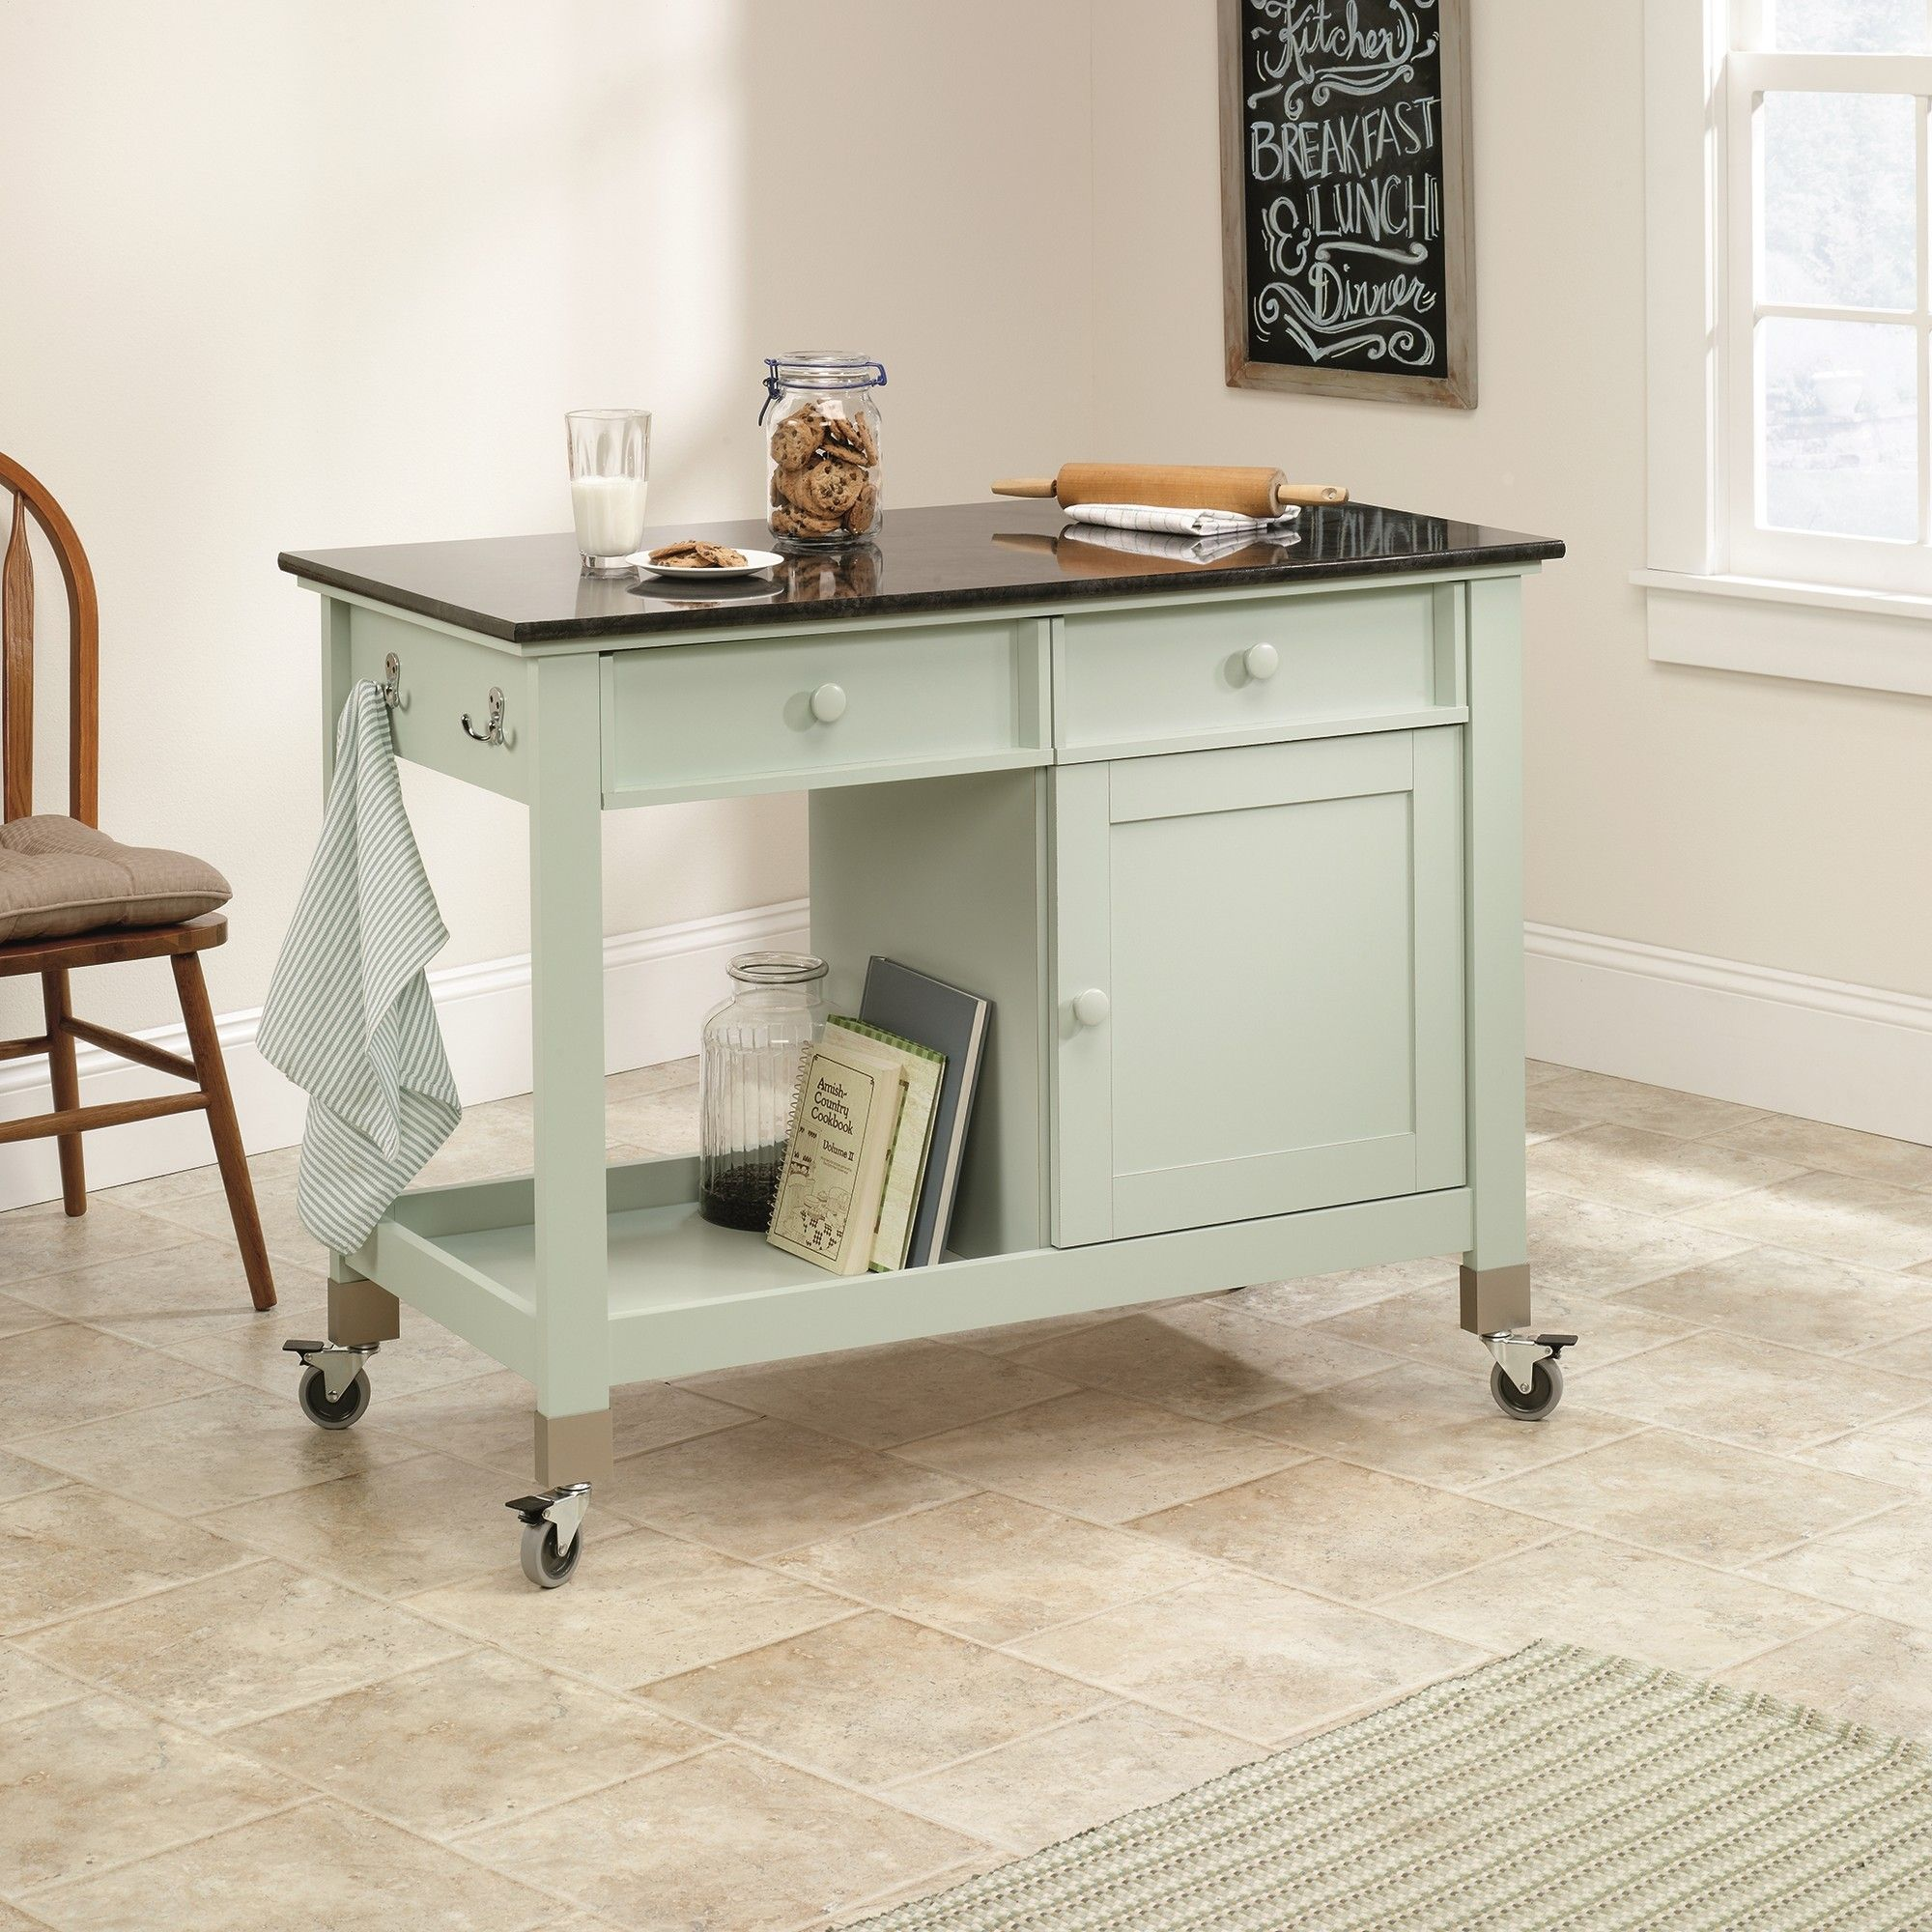 Sauder Original Cottage Mobile Kitchen Island & Reviews | Wayfair ...